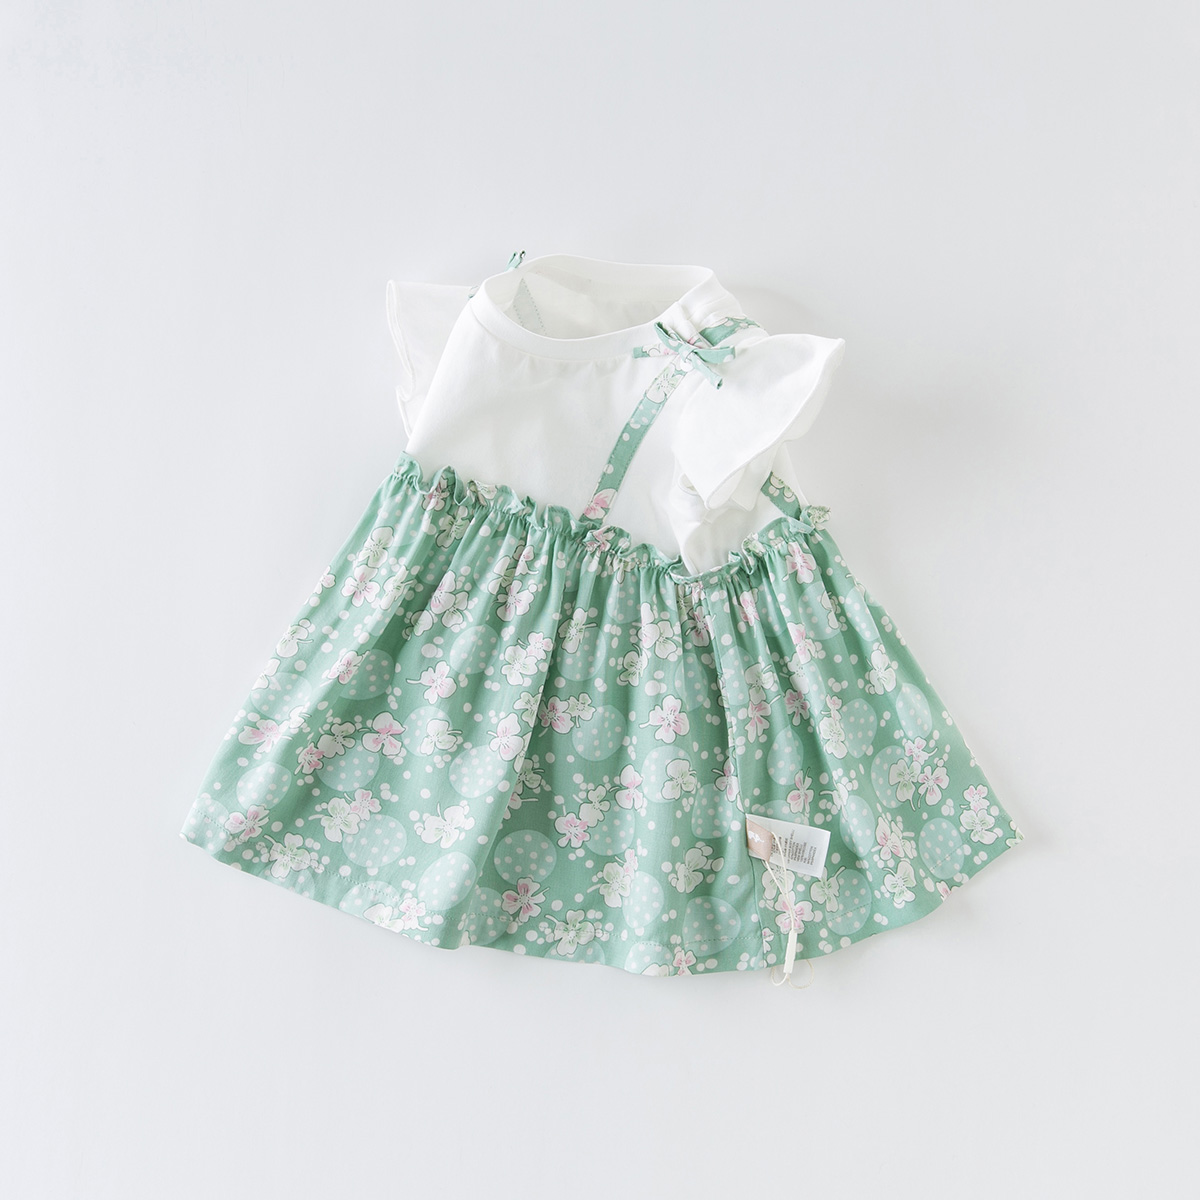 Davi Bella children's clothing new girl dress summer baby short-sleeved top children's skirt floral dress